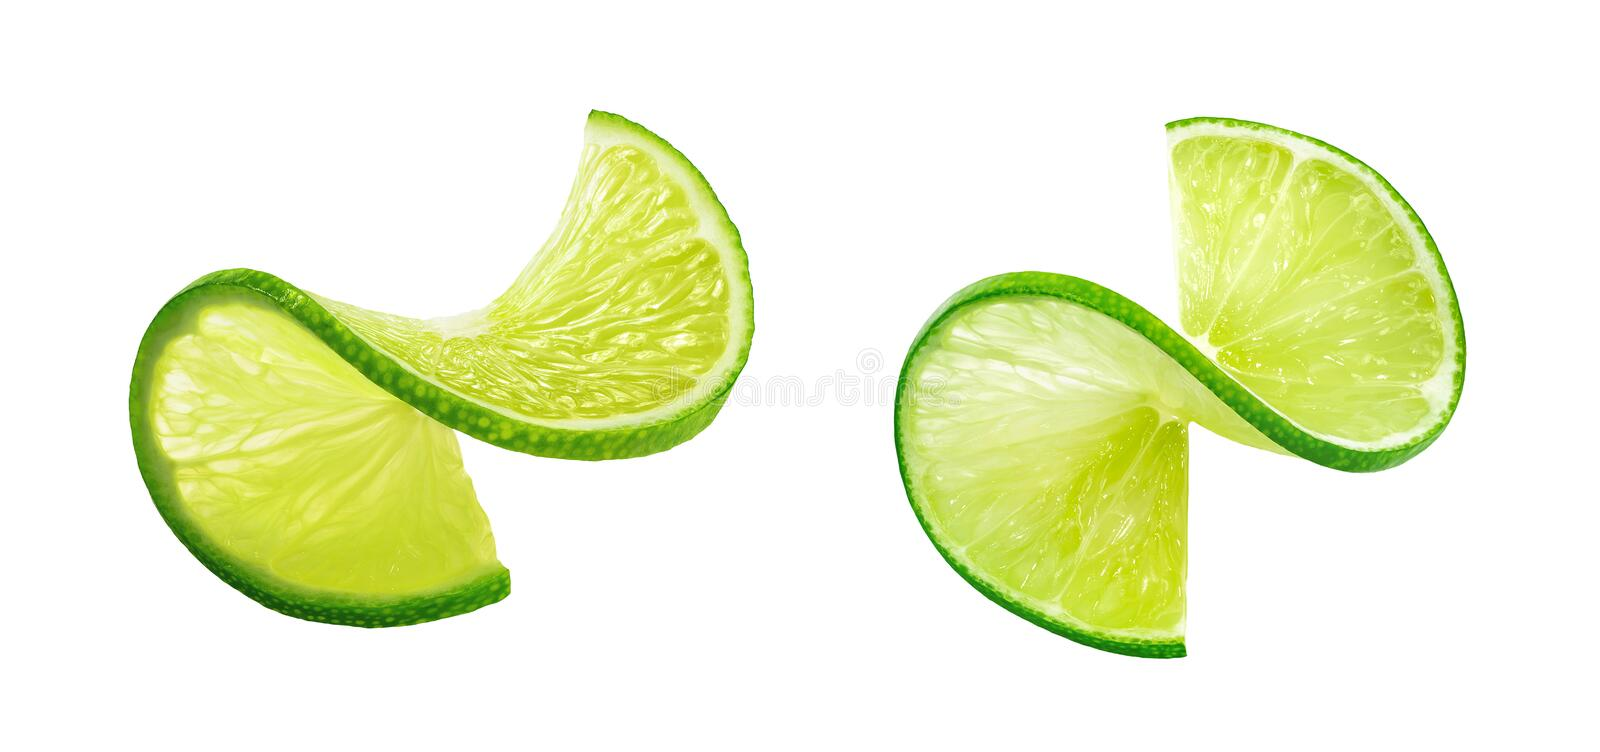 LIme slice twist isolated on white background stock image